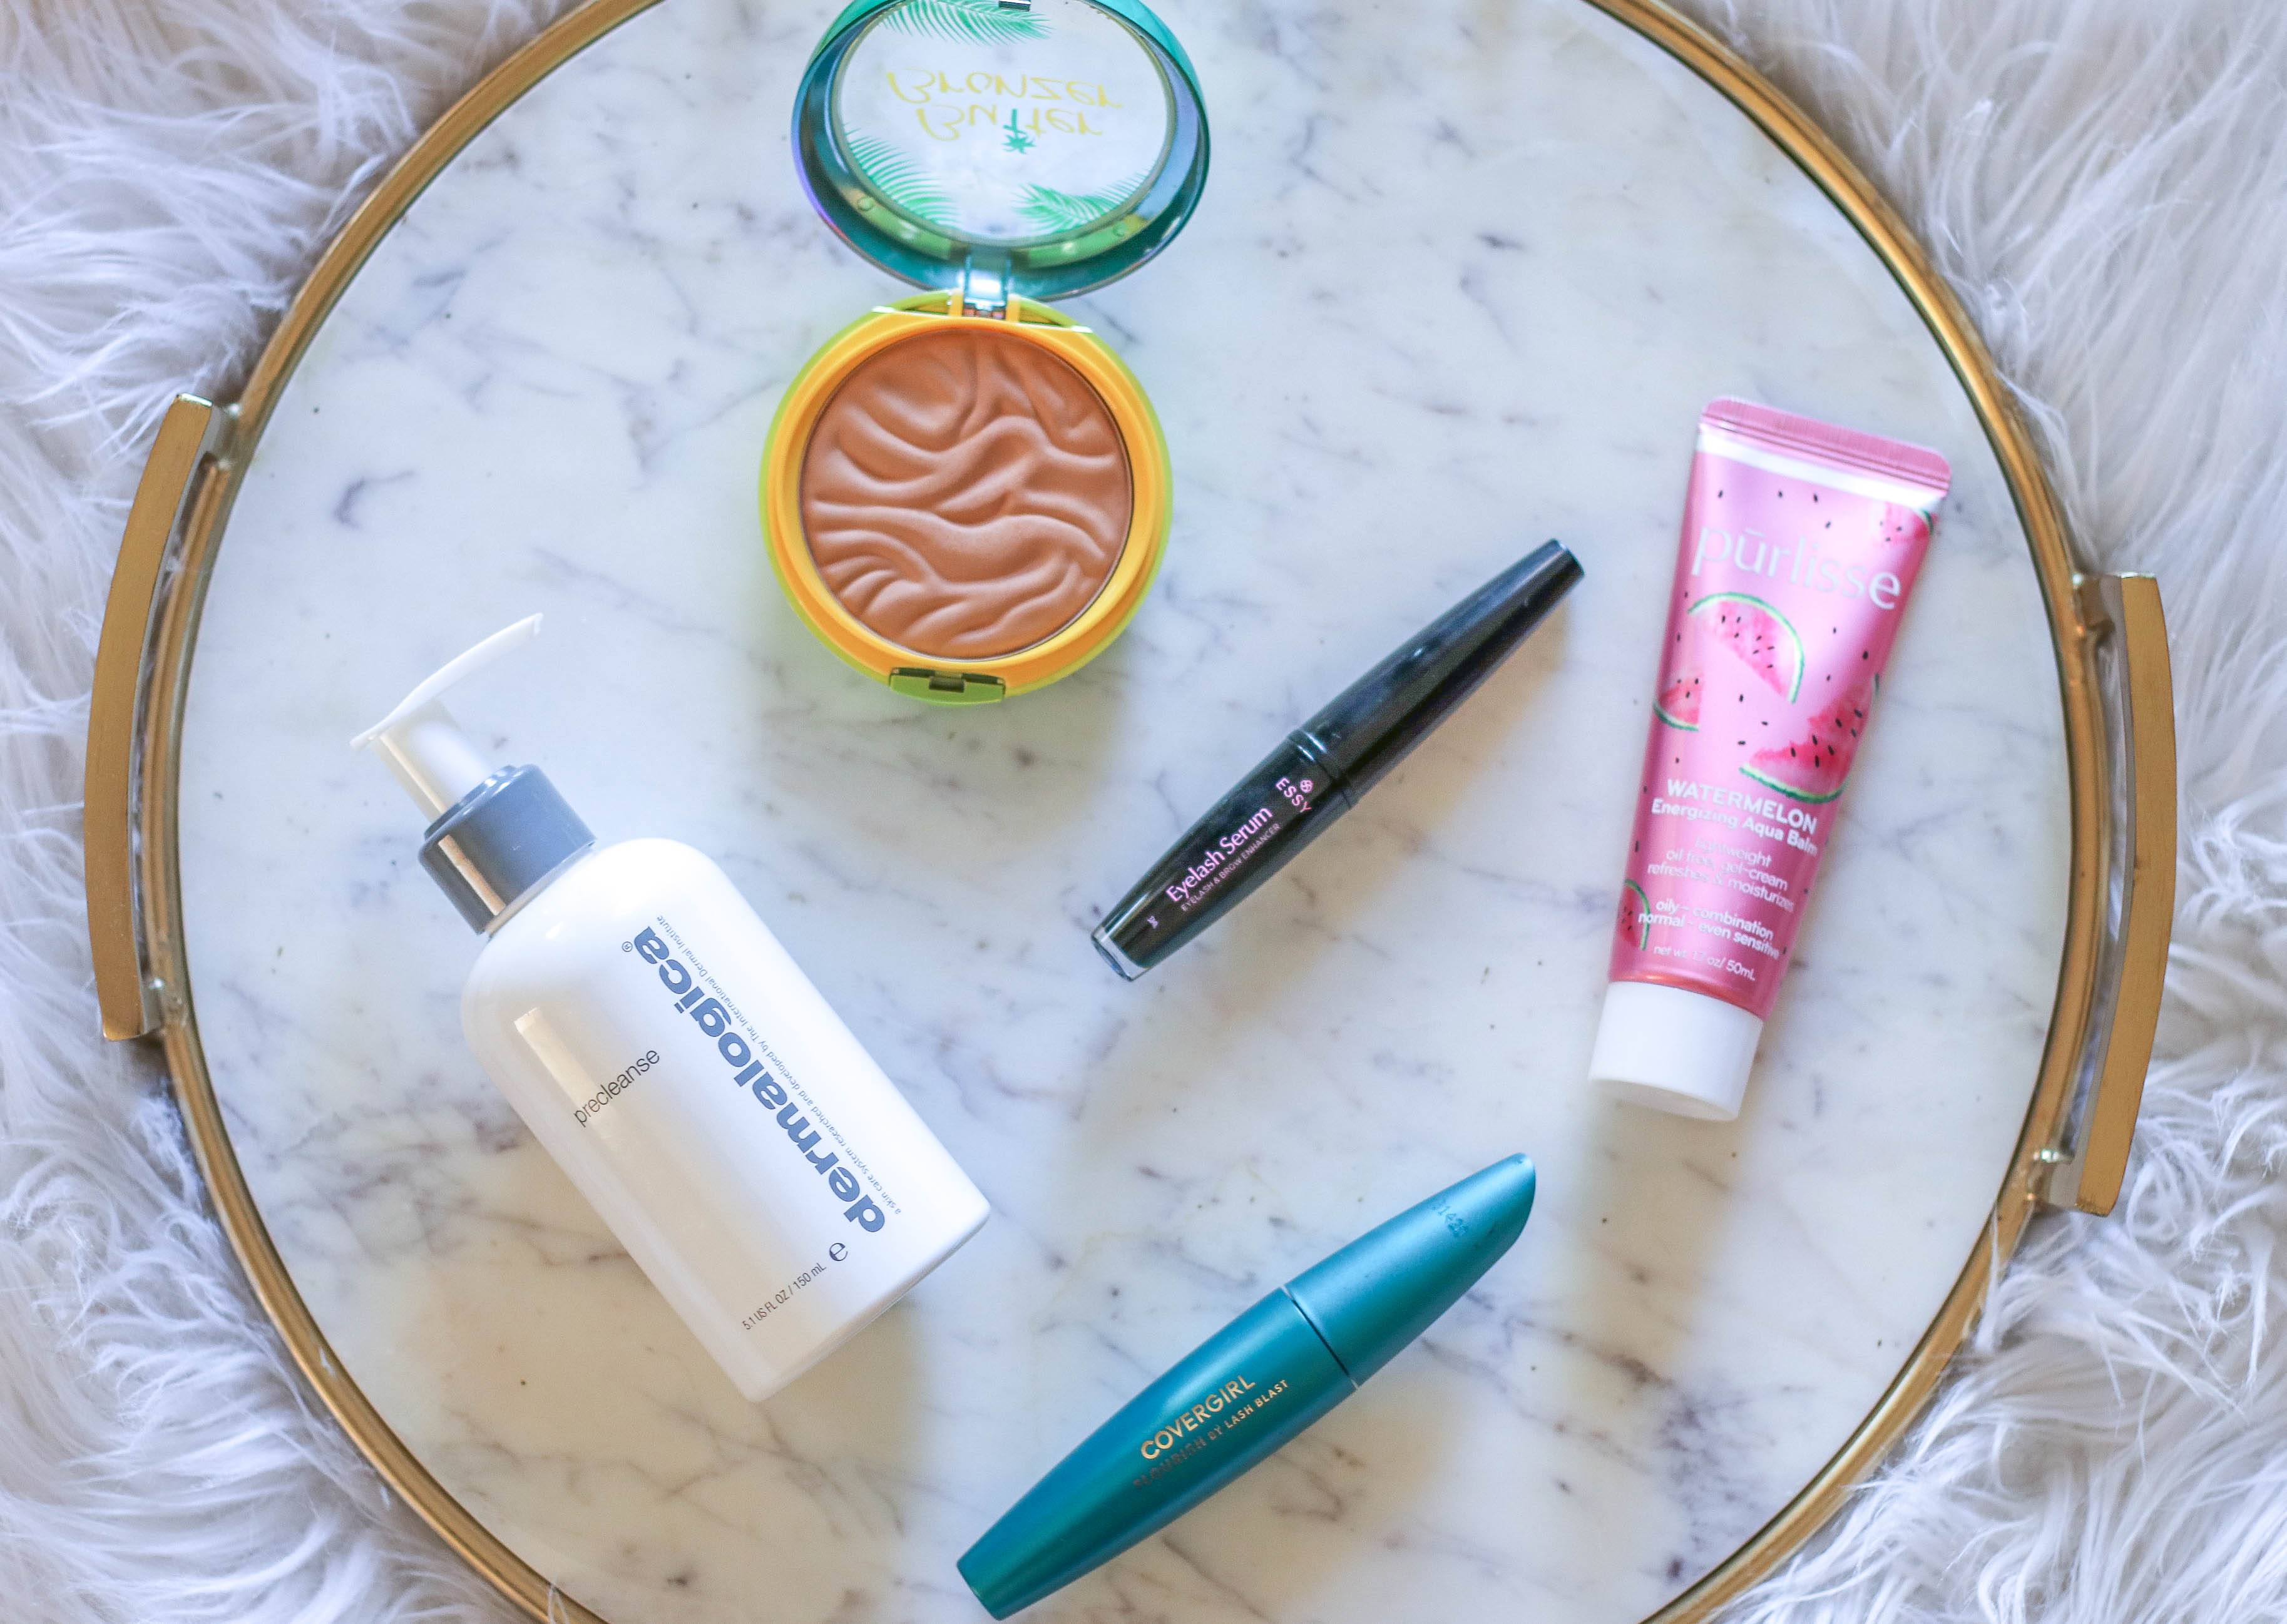 august beauty hits and misses #beauty #makeup #skincare